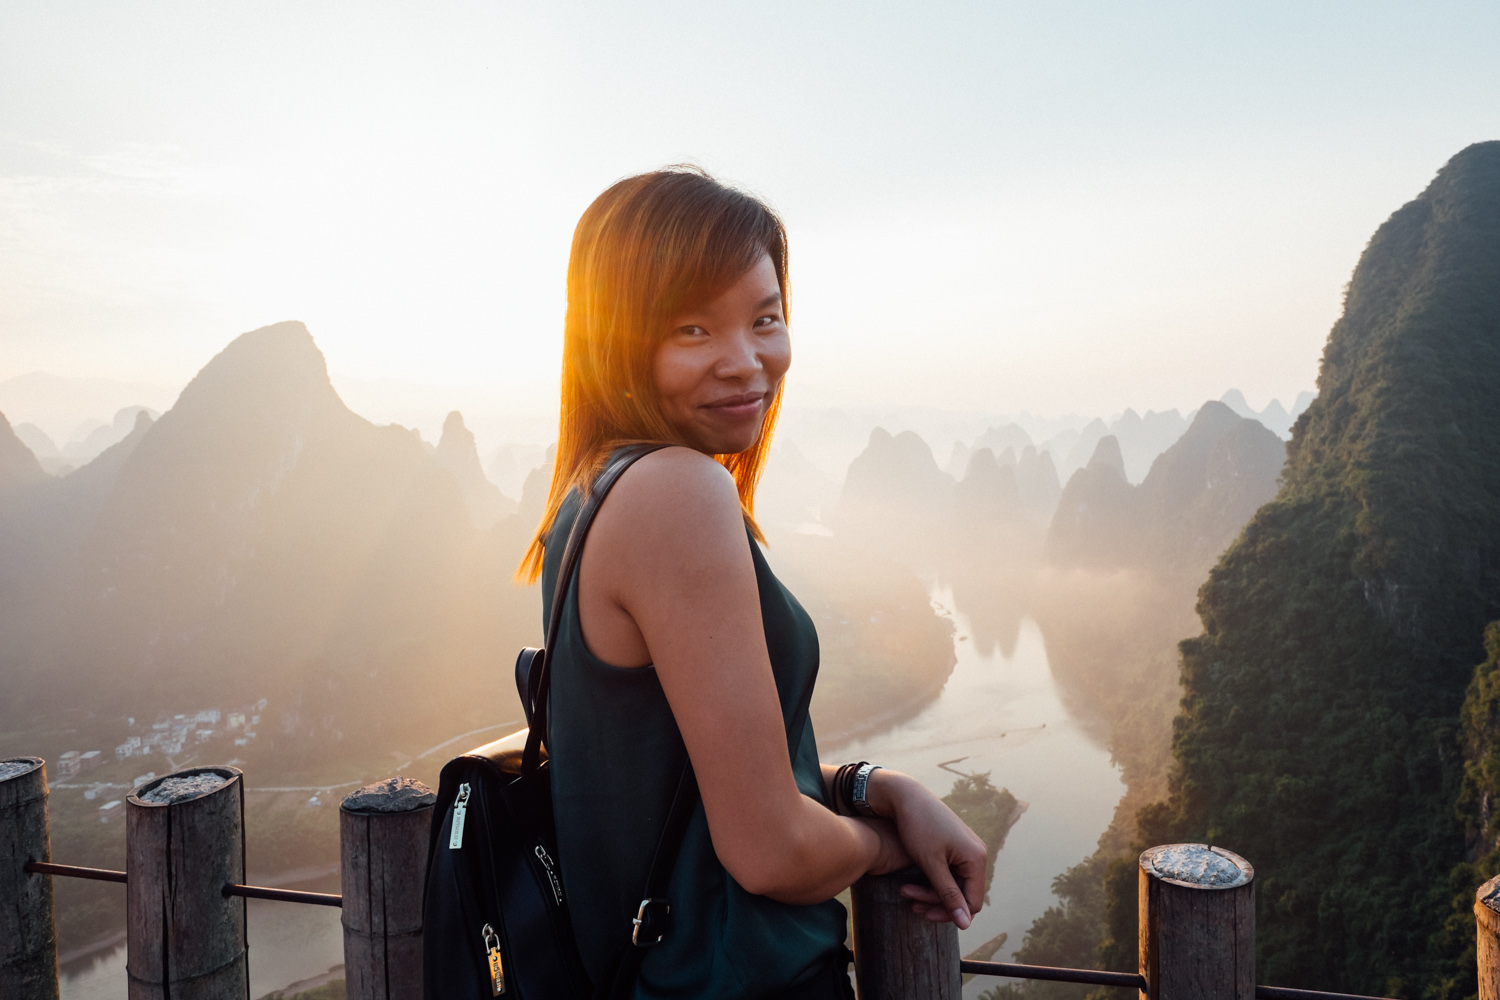 Jane, also at Xianggong hill. The sunrise we saw from there was truly spectacular.